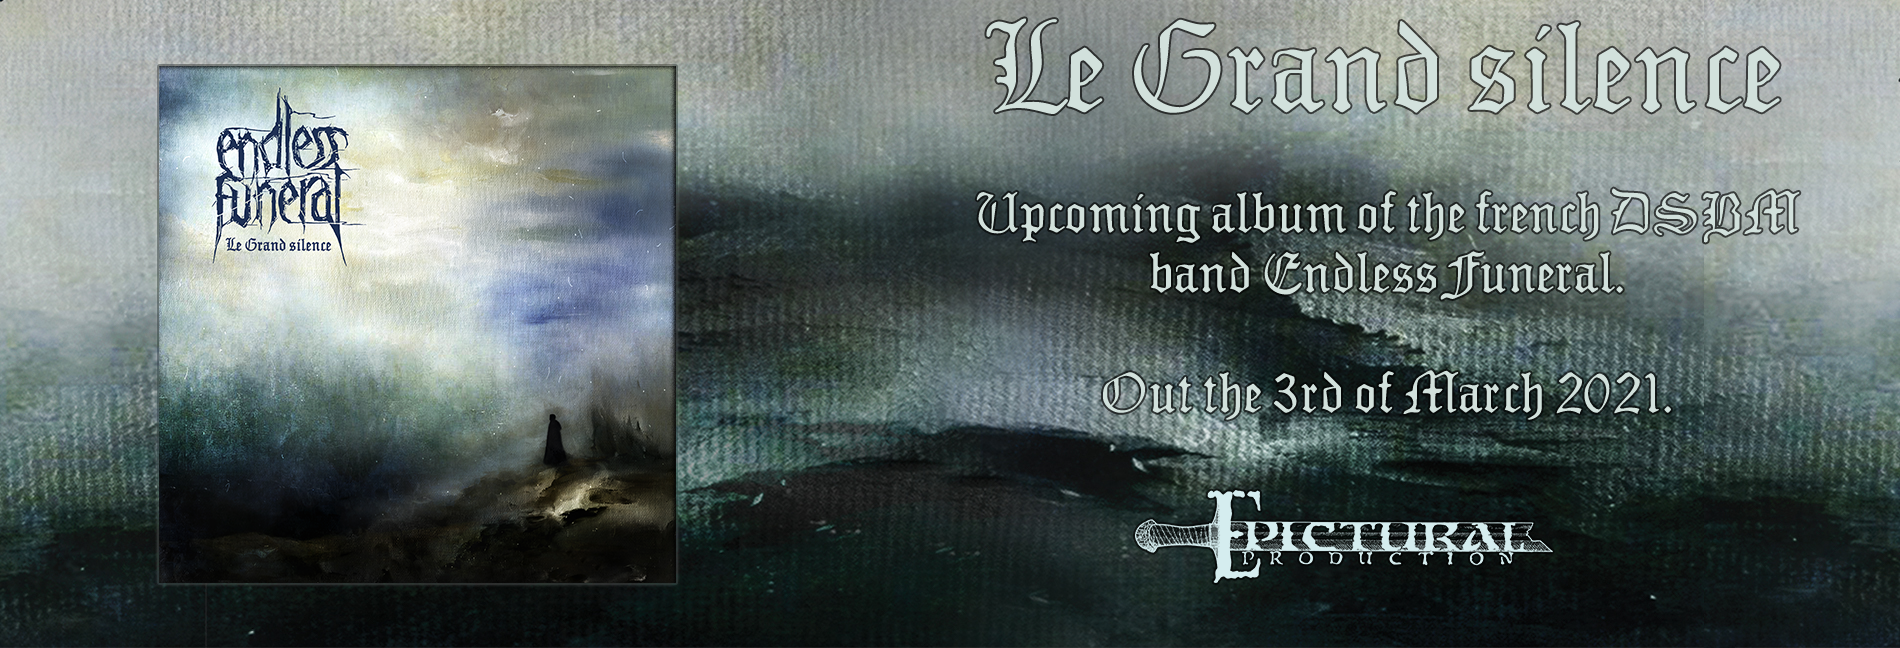 Endless funeral le grand silence